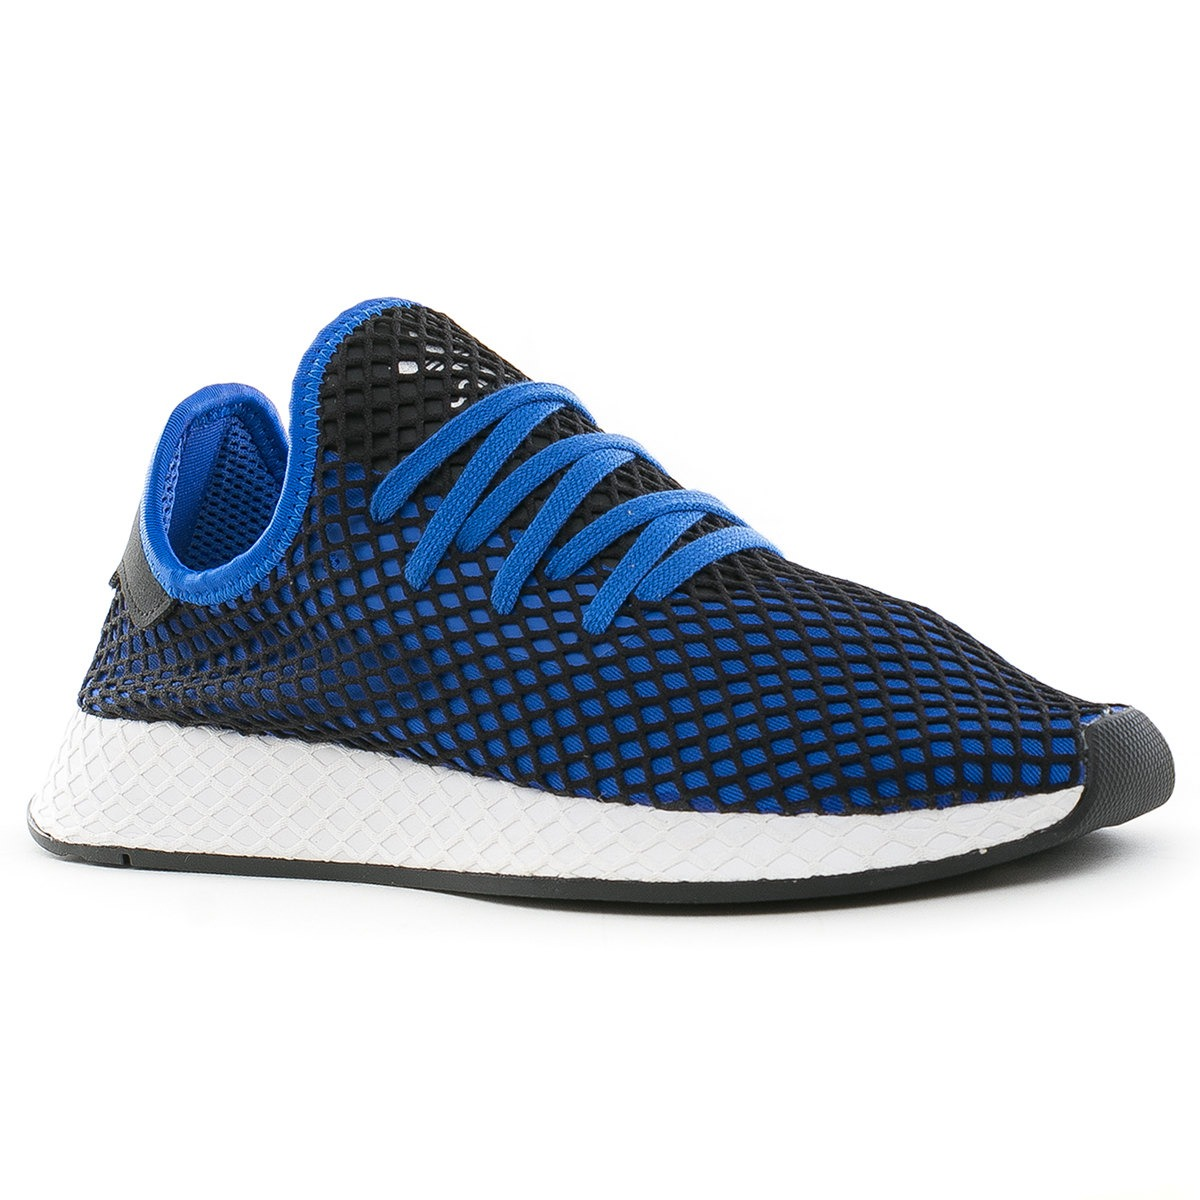 bb6a274a Zapatilla Deerupt Runner Azul adidas Originals - $ 2.189,00 en ...